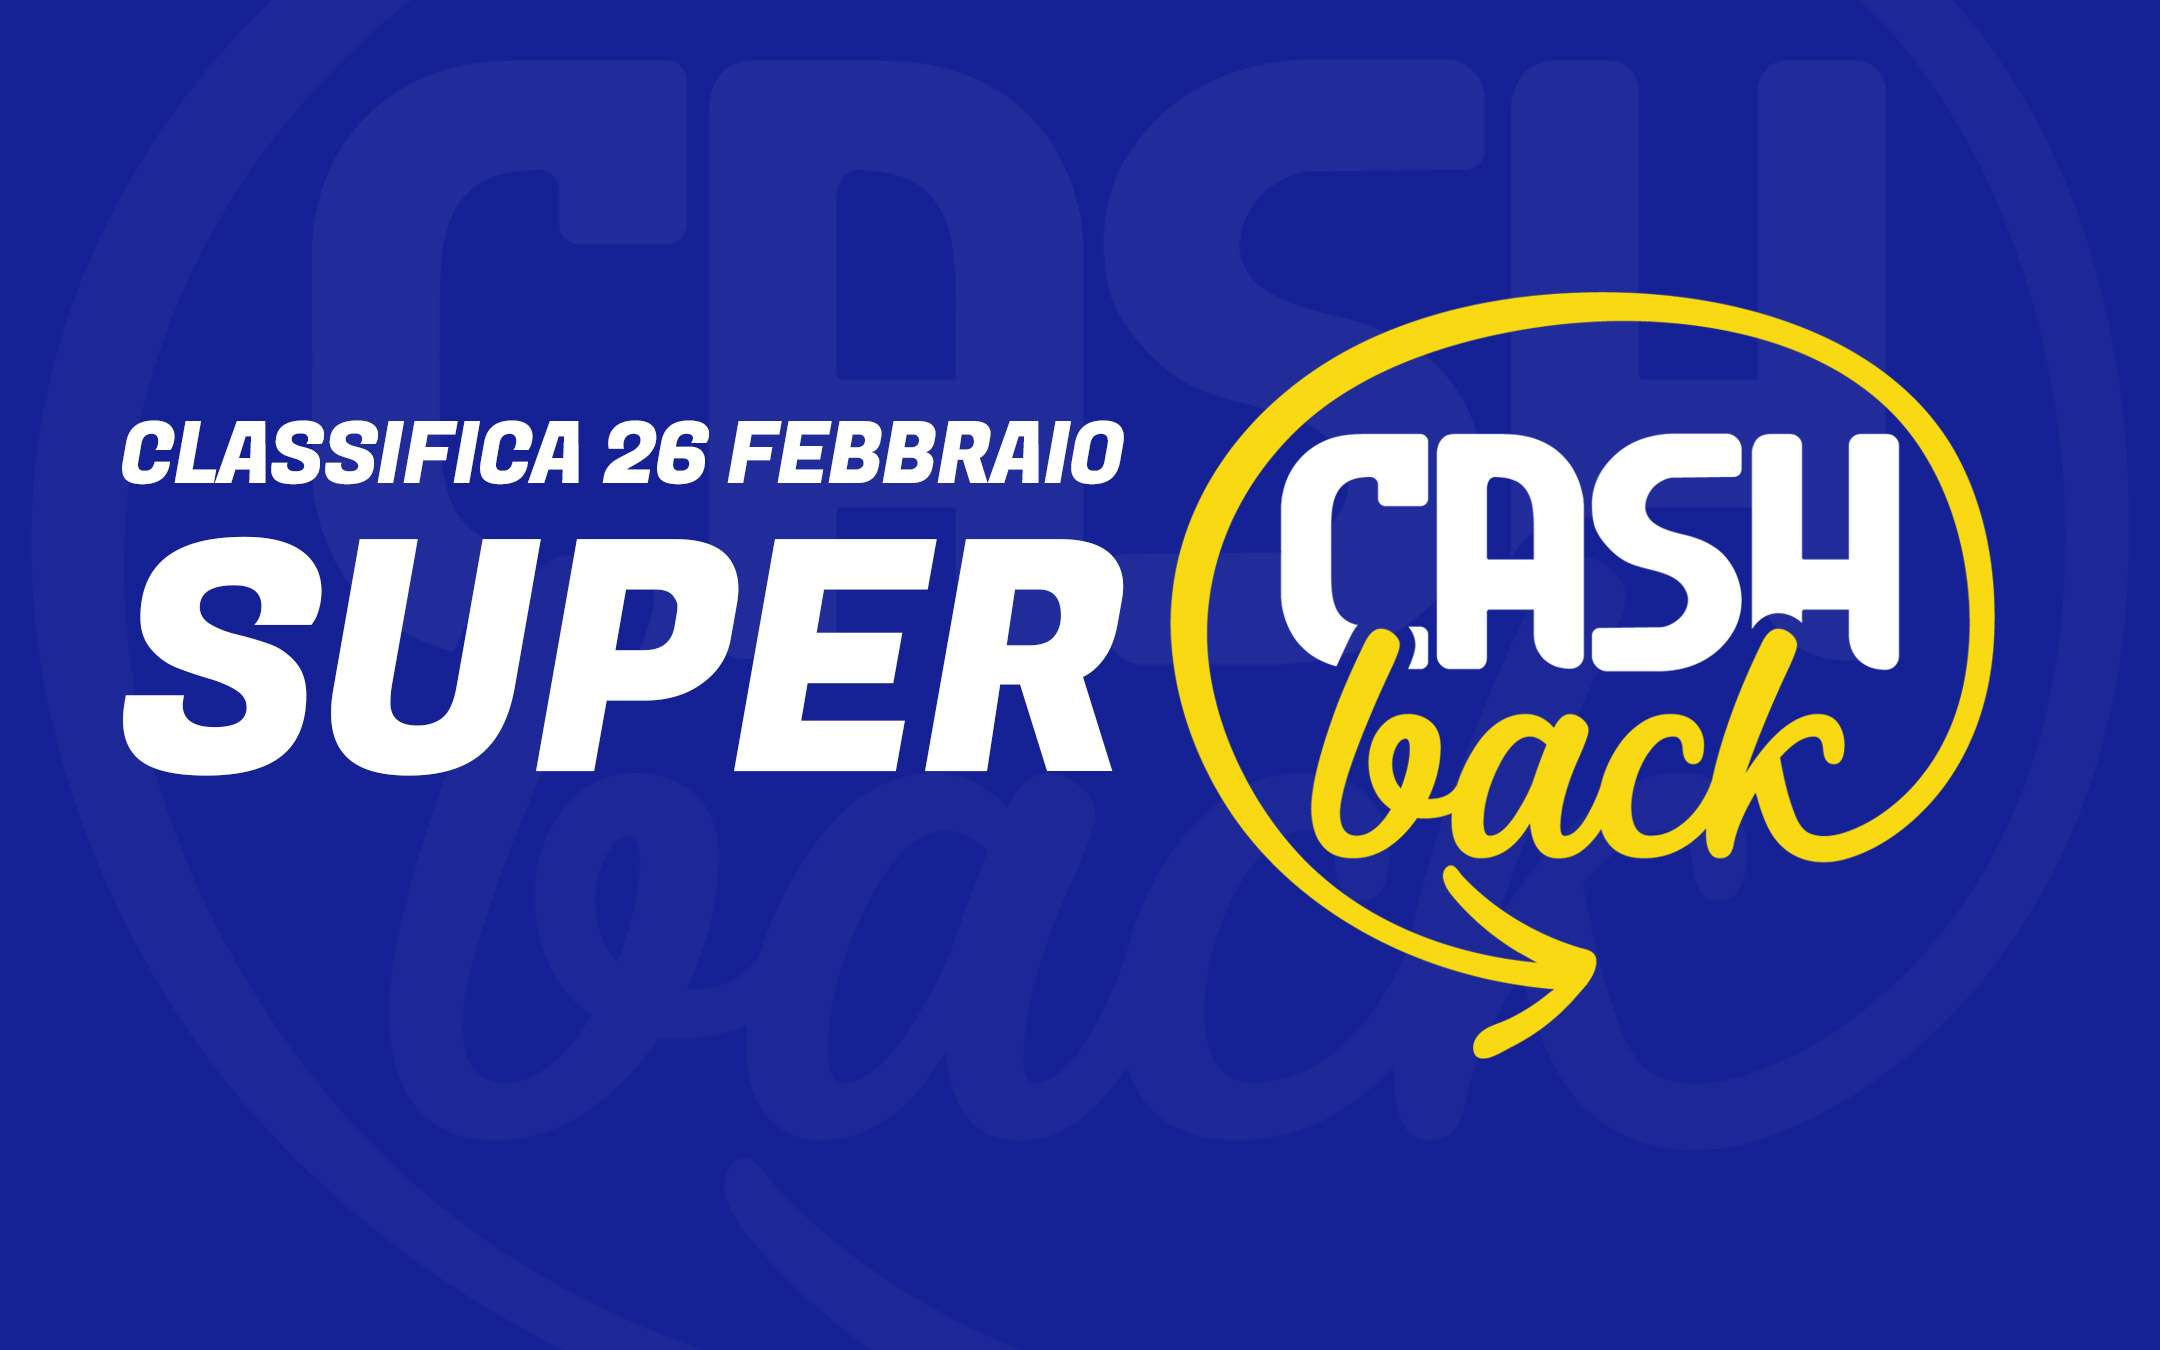 Super Cashback: Transaction Leaderboard, February 26th